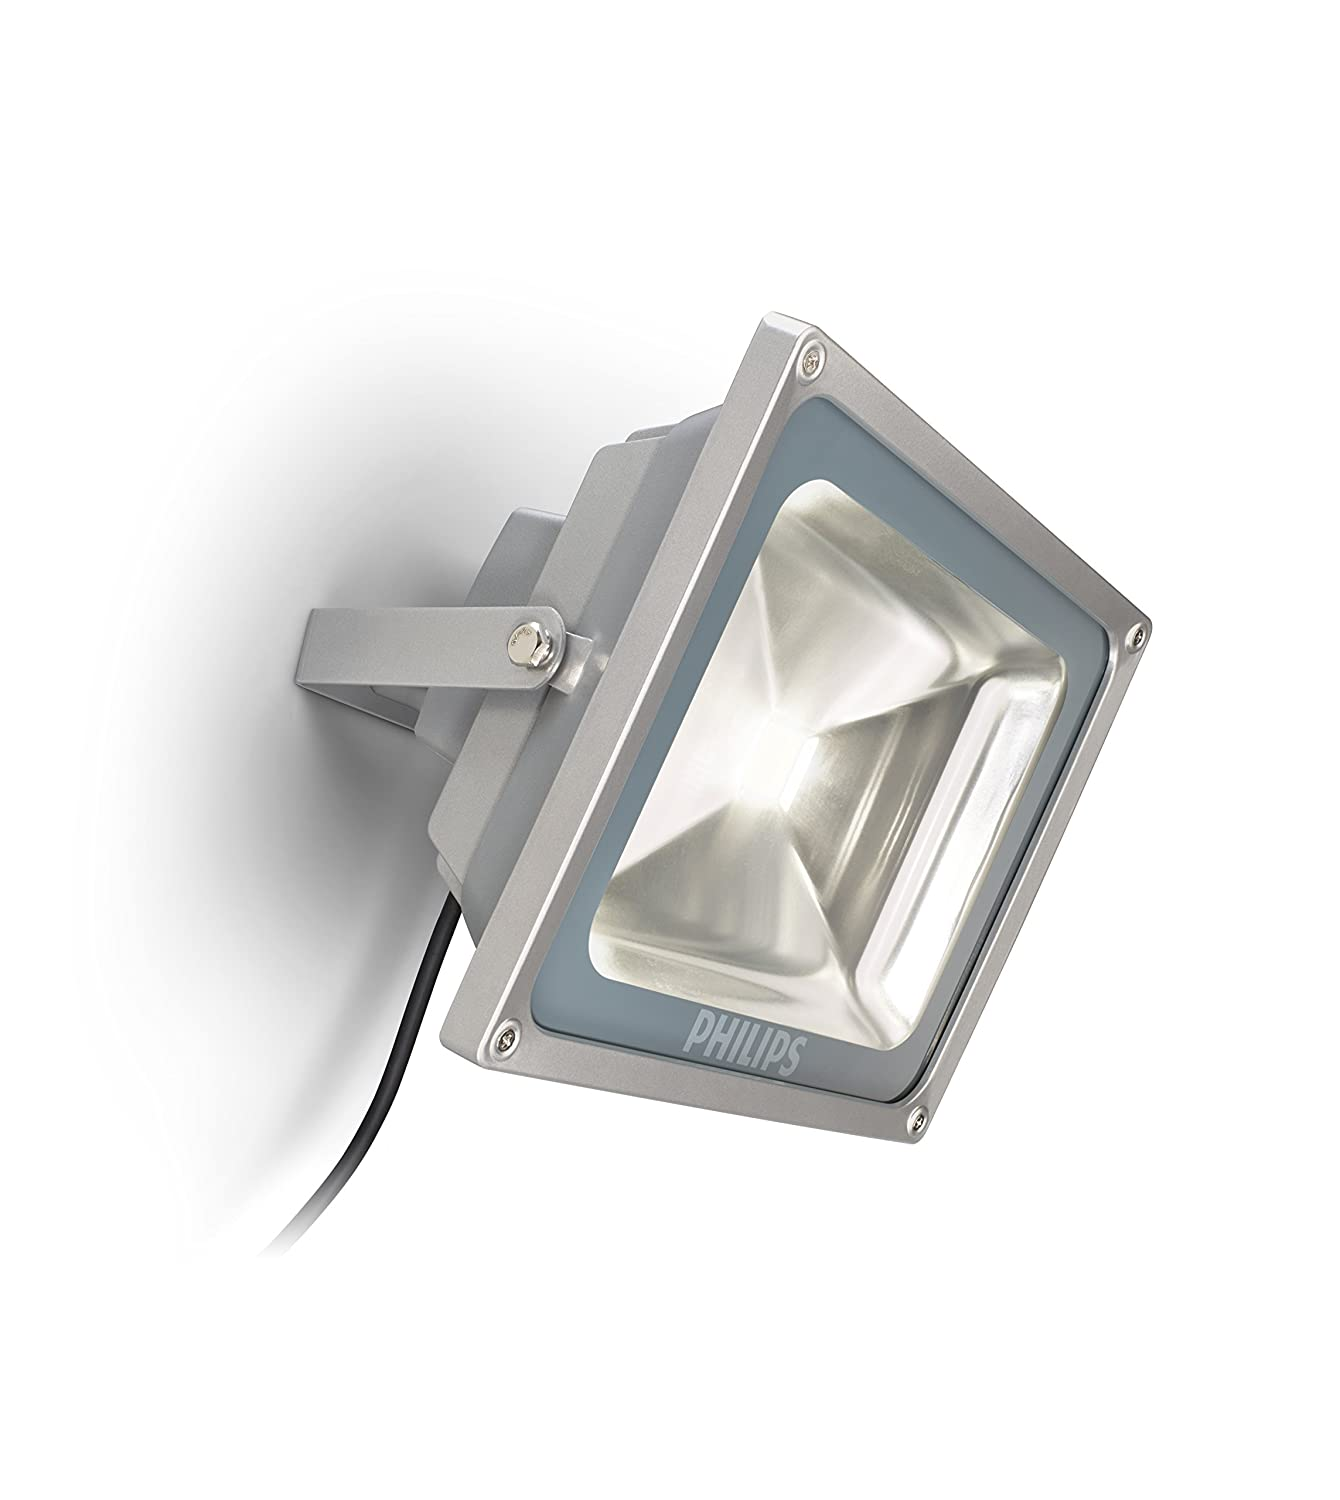 Philips 6929599 Proyector 54 W LED Aluminio - Proyectores (54 W ...